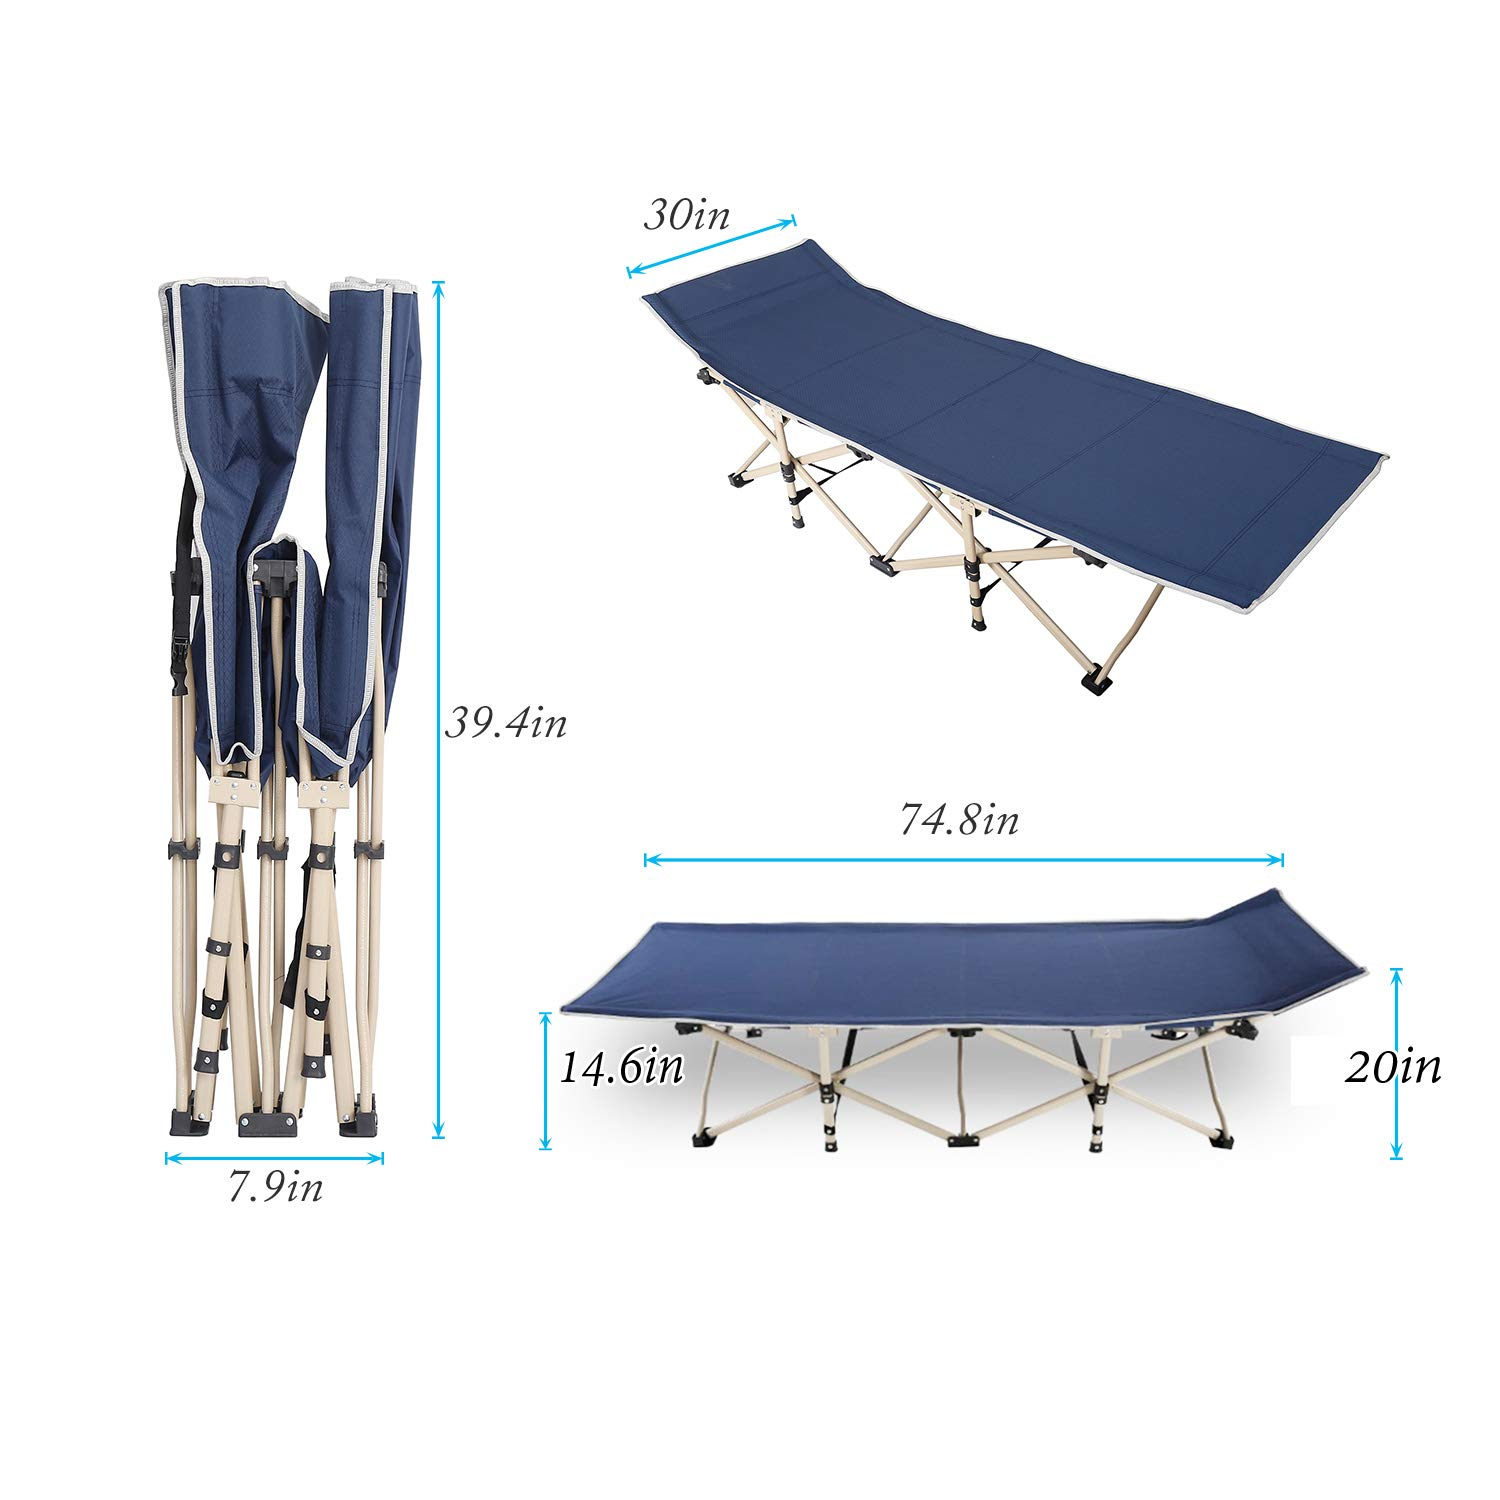 Navy Blue CT-F10-71M-SH Made of Double Layers 600D Oxford SogesHome Folding Camping Cot Portable Outdoor Folding Bed Cot with Side Bag and Pillow Gray